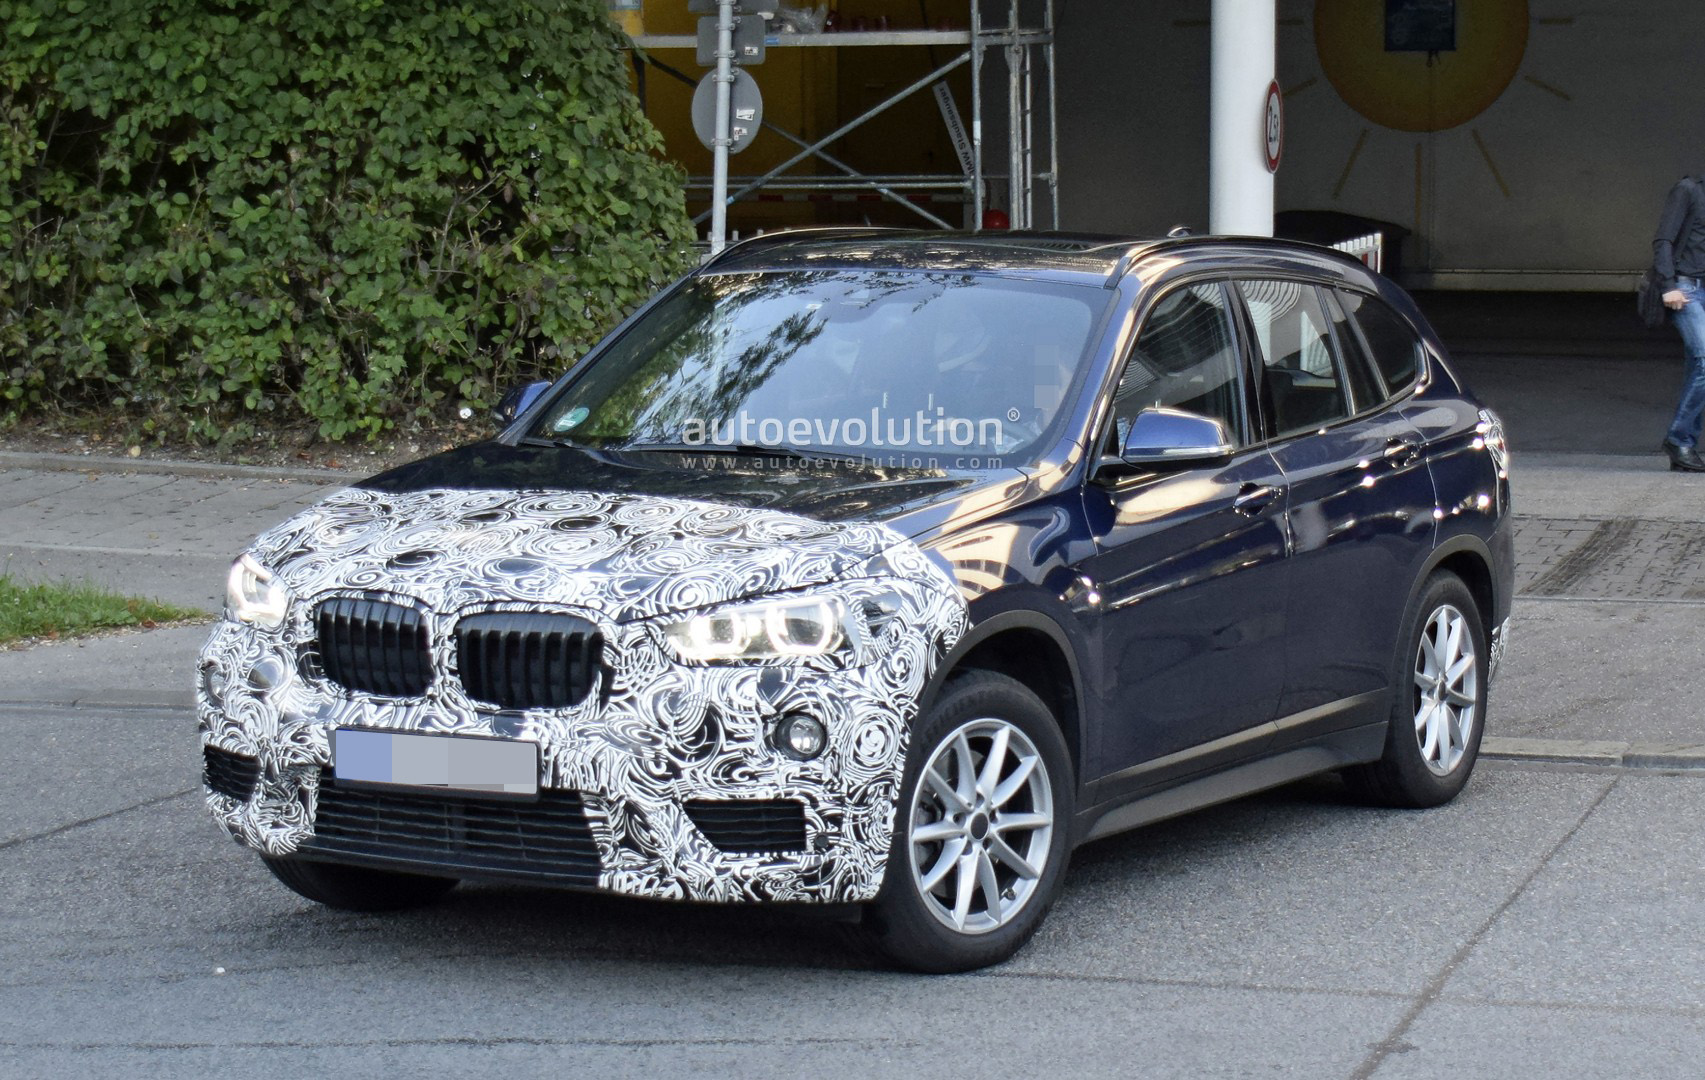 55 The Best 2020 BMW X1 Price Design and Review